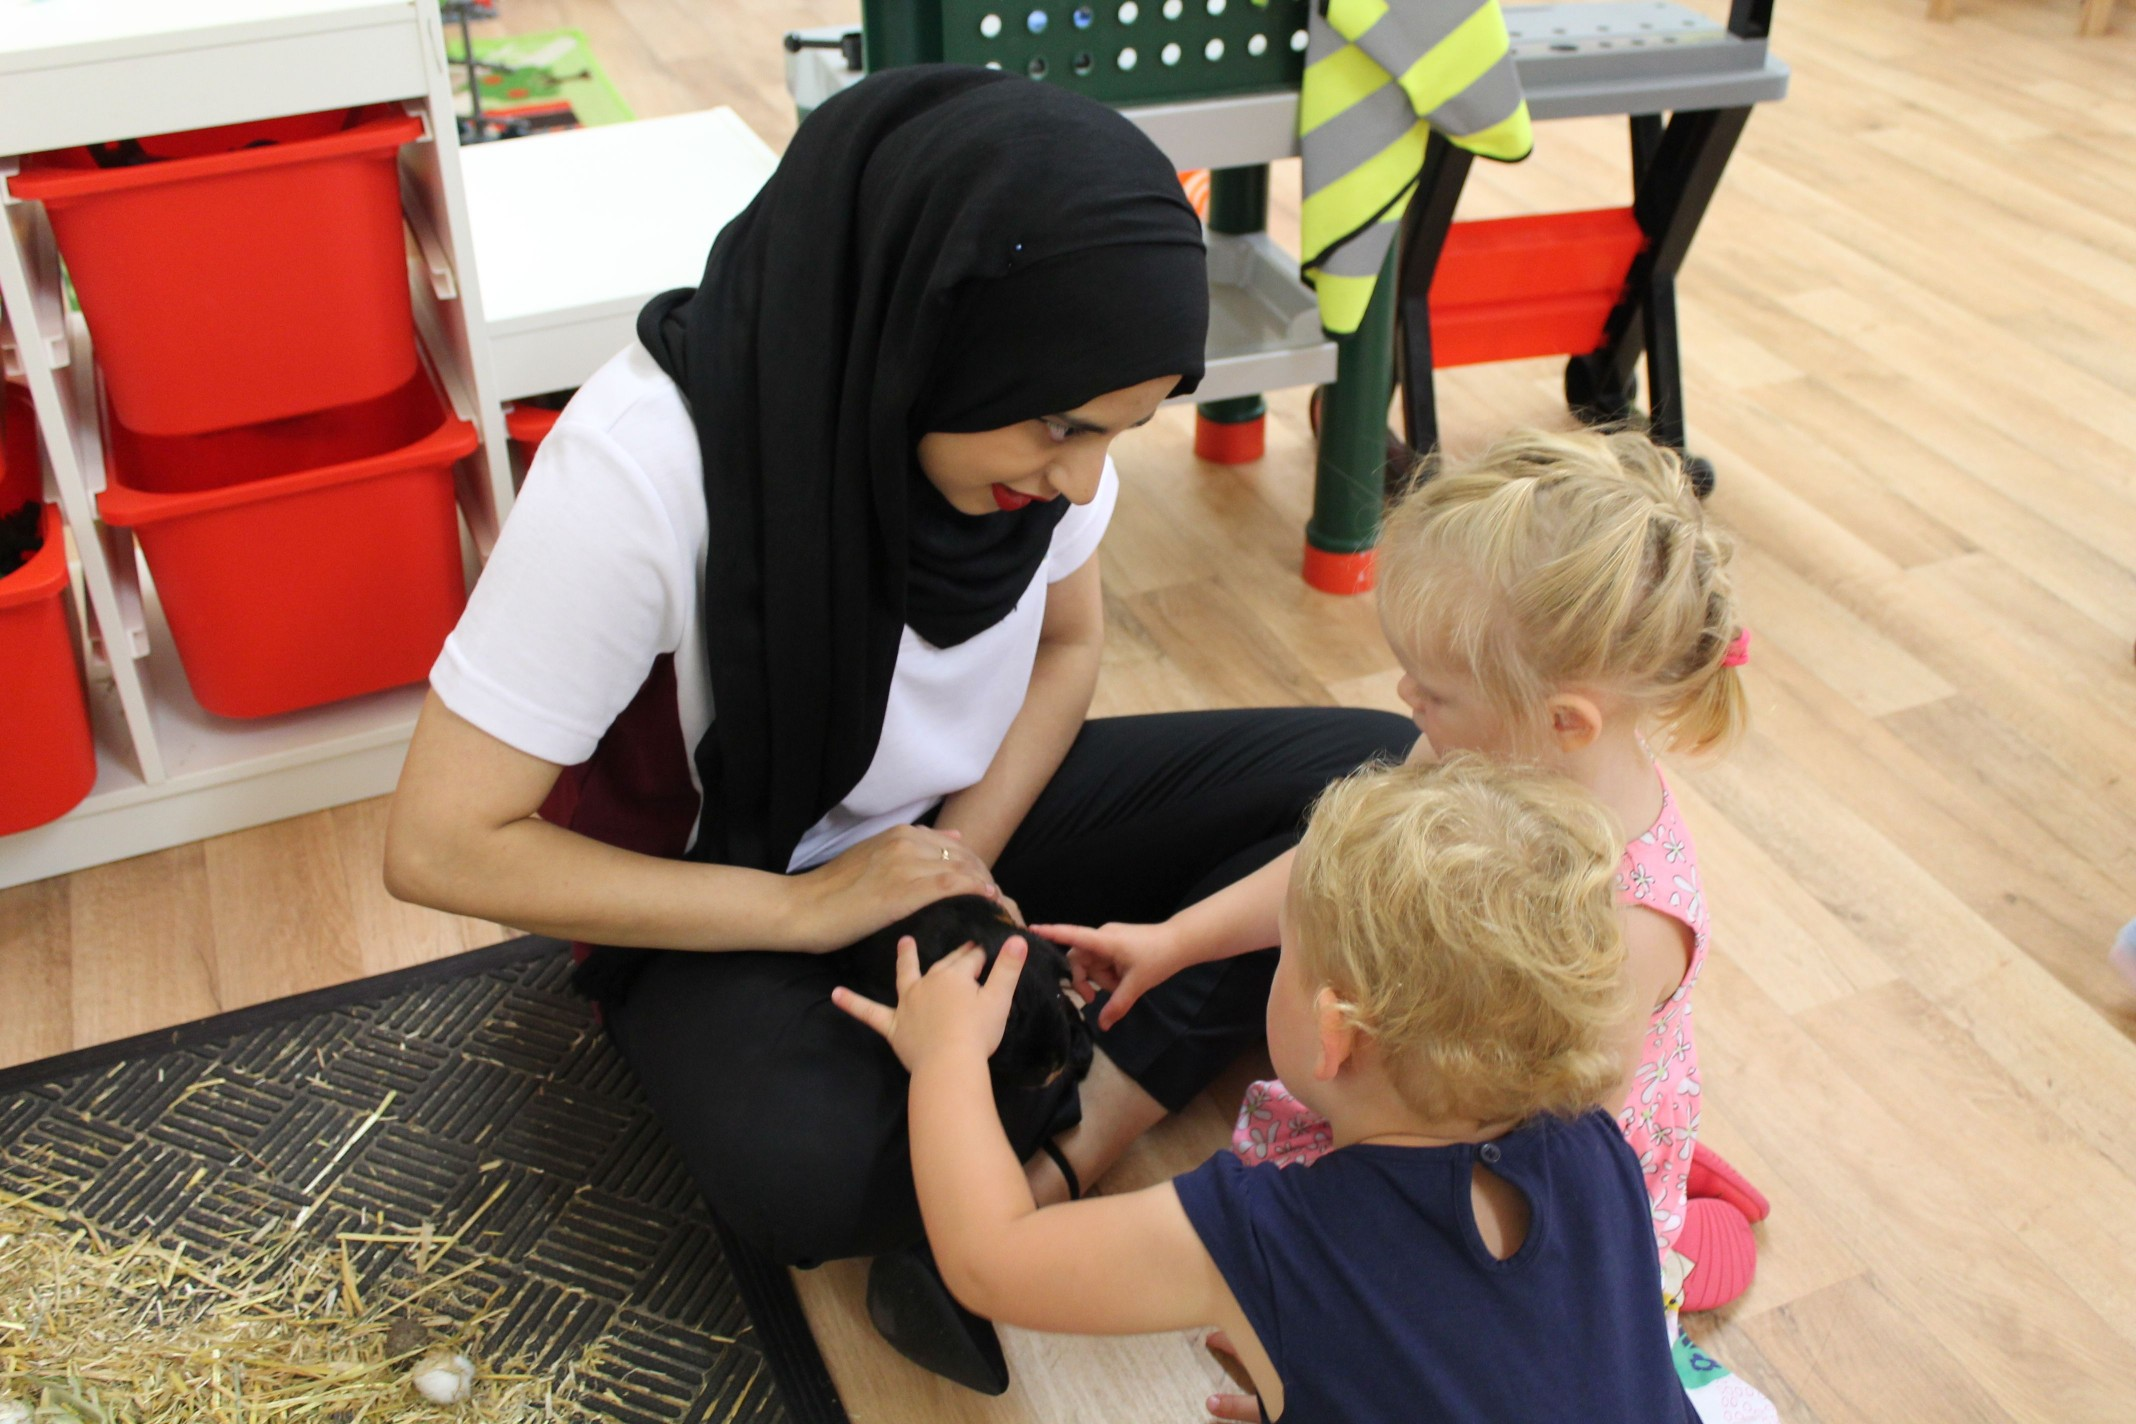 Saliha using the nursery guinea pig to teach the children different concepts and vocabulary.